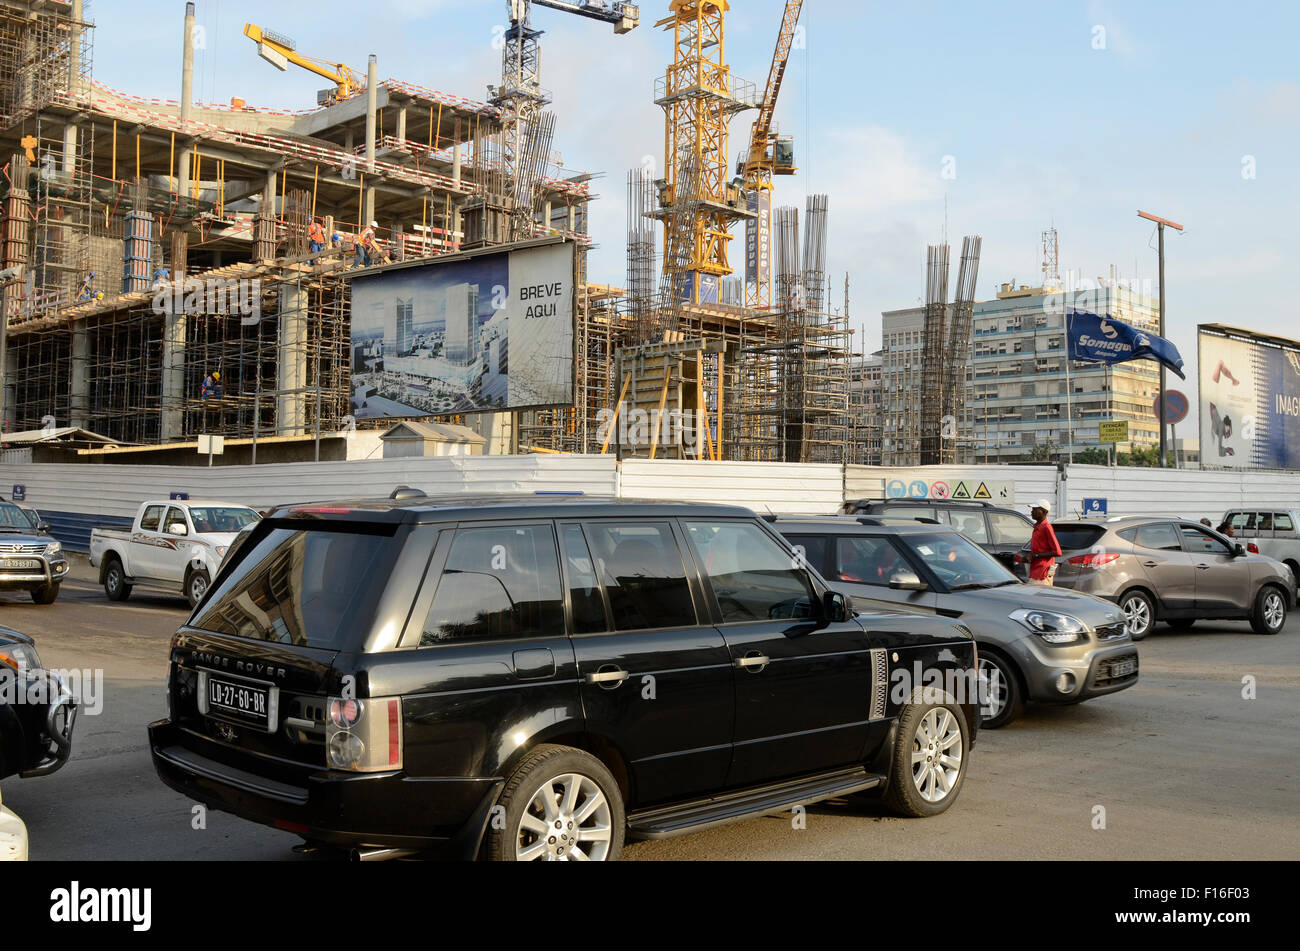 ANGOLA Luanda, the capital is one of the expensive real estate markets worldwide, construction site of new office - Stock Image